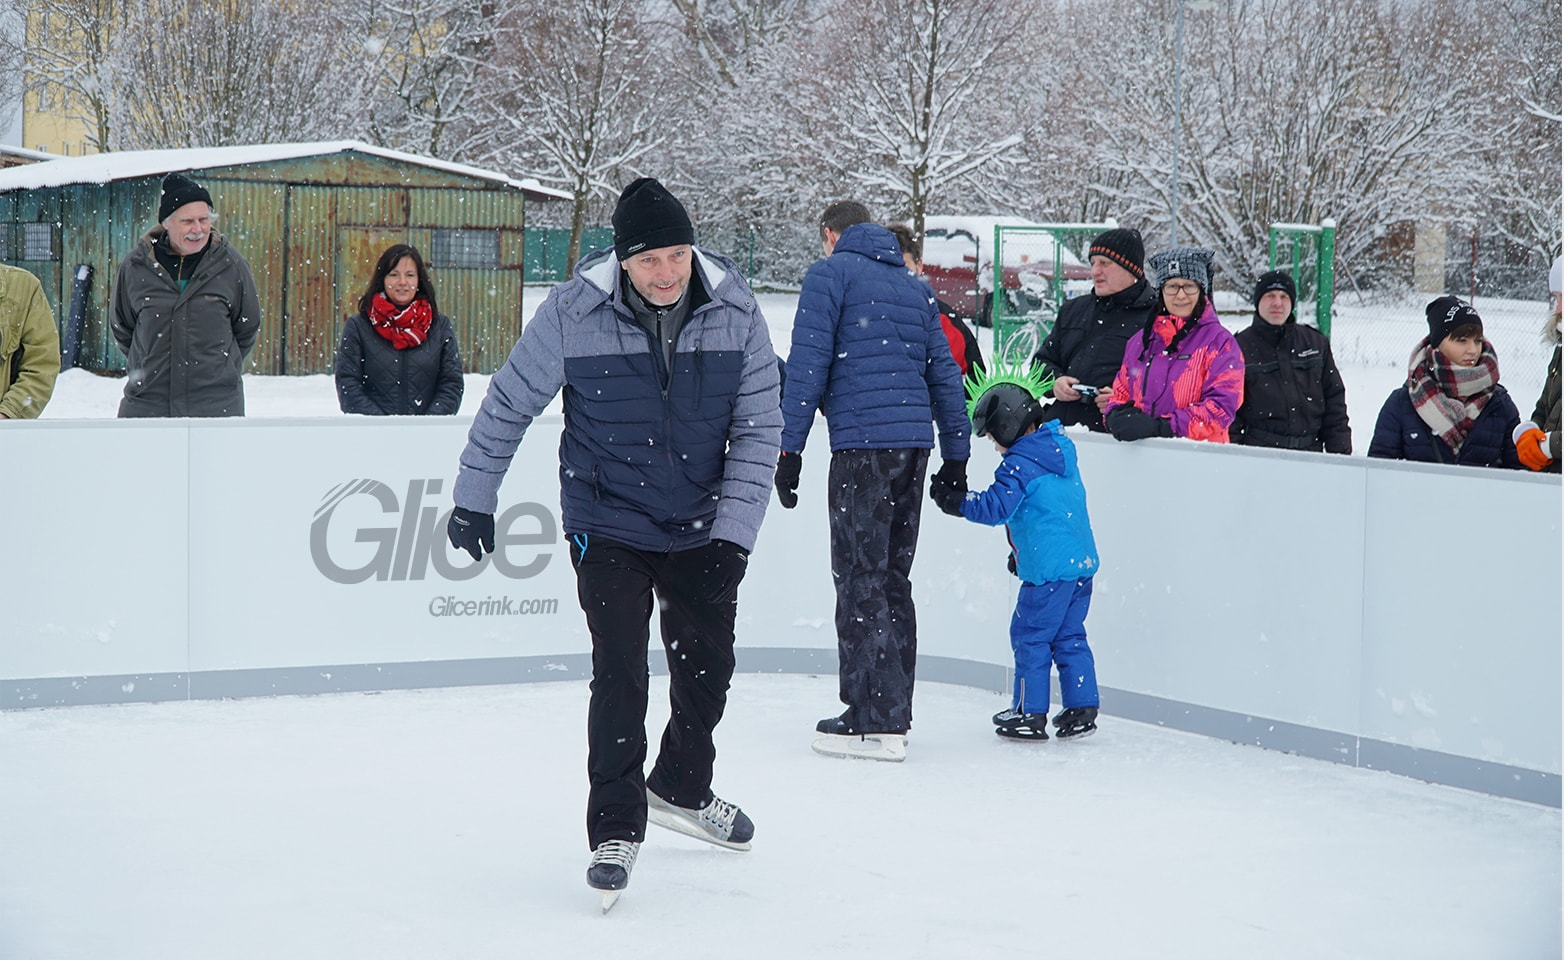 Man skating on synthetic ice rink while it's snowing